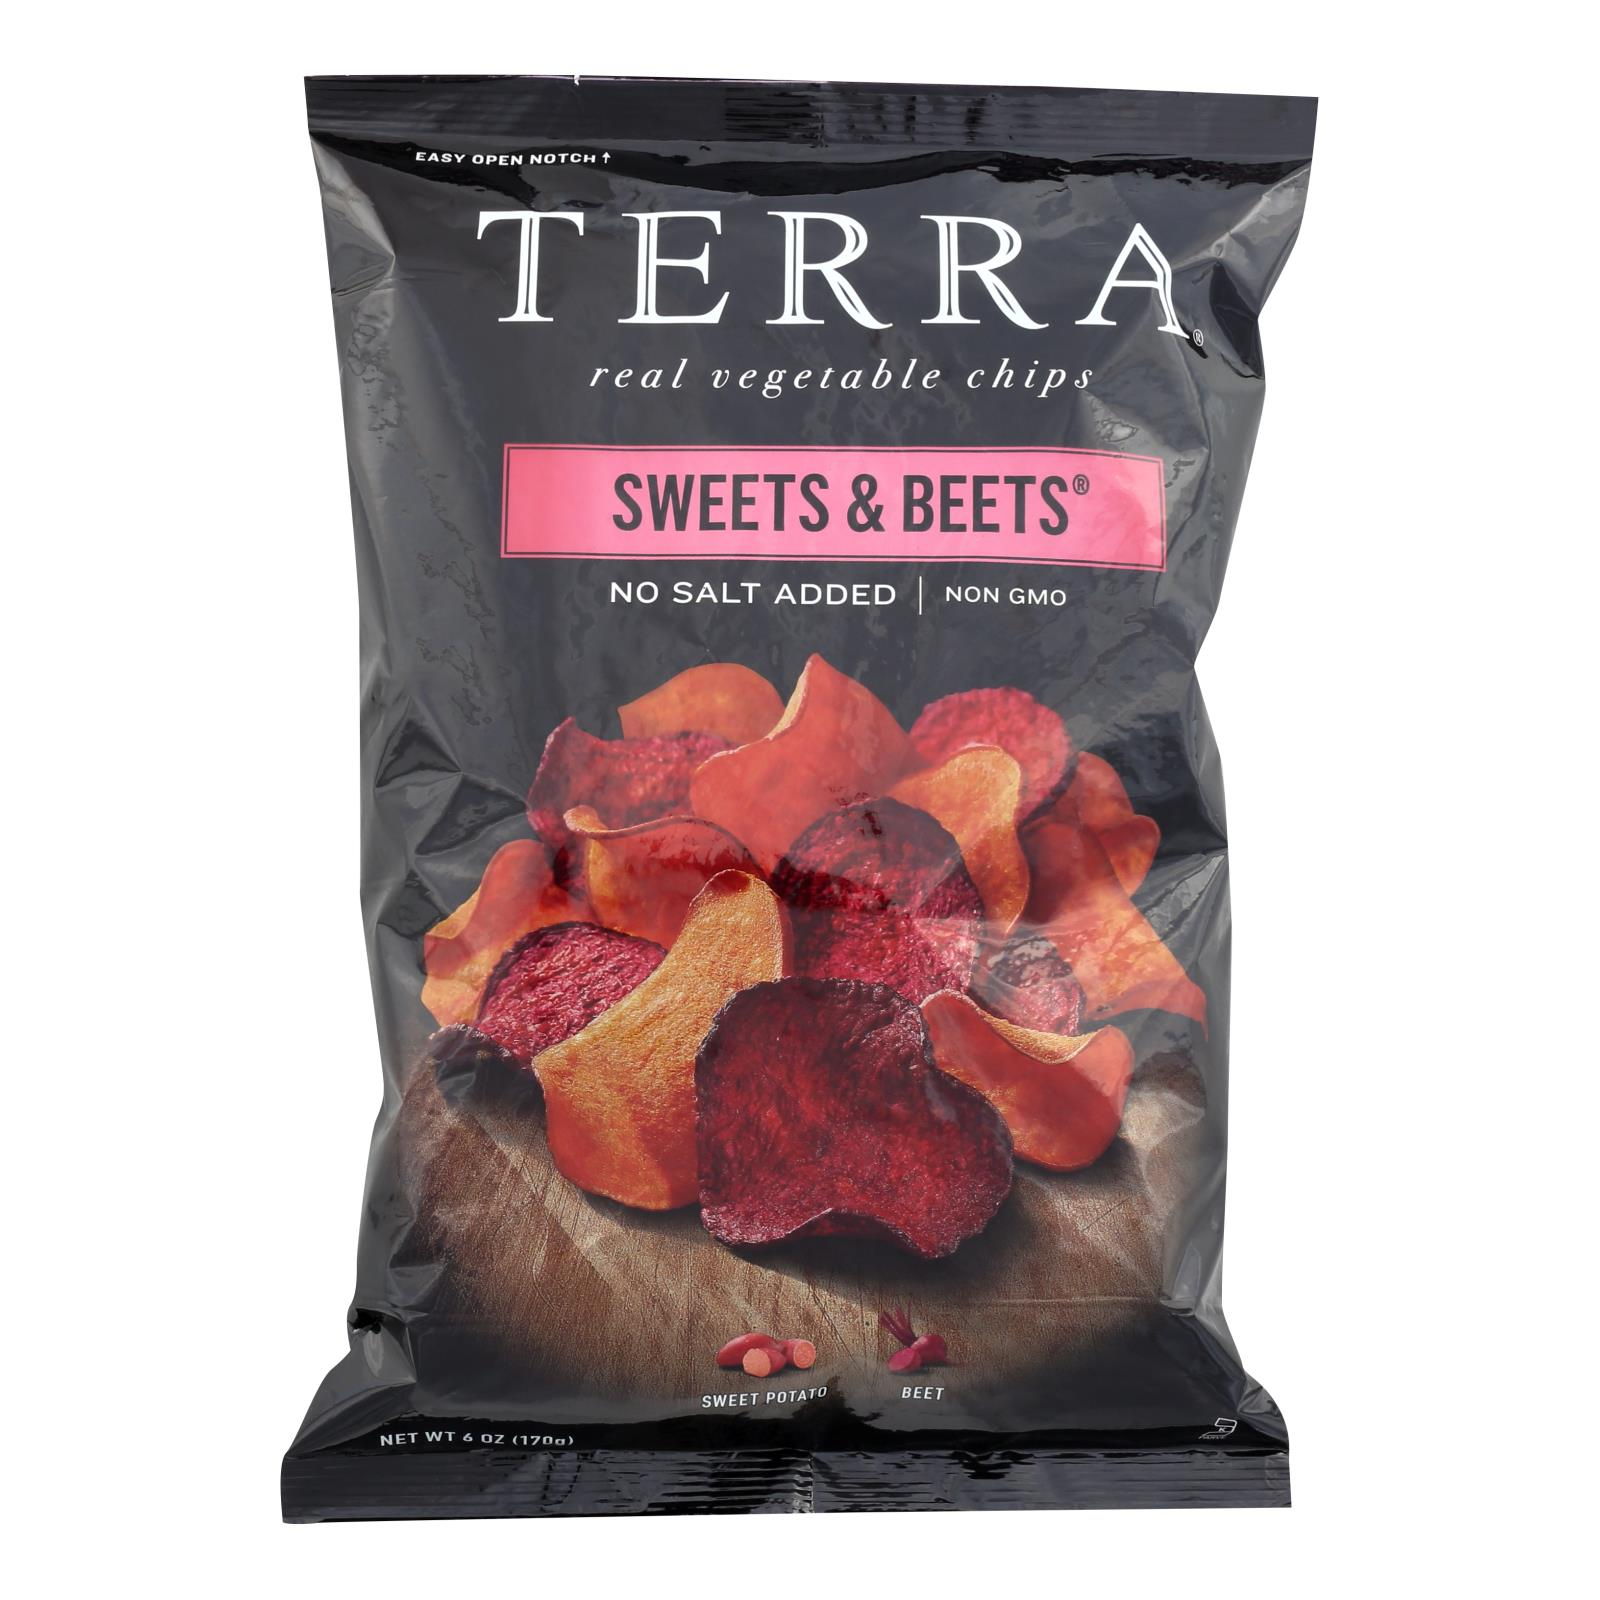 Terra Chips Sweet Potato Chips - Sweets and Beets - Case of 12 - 6 oz.